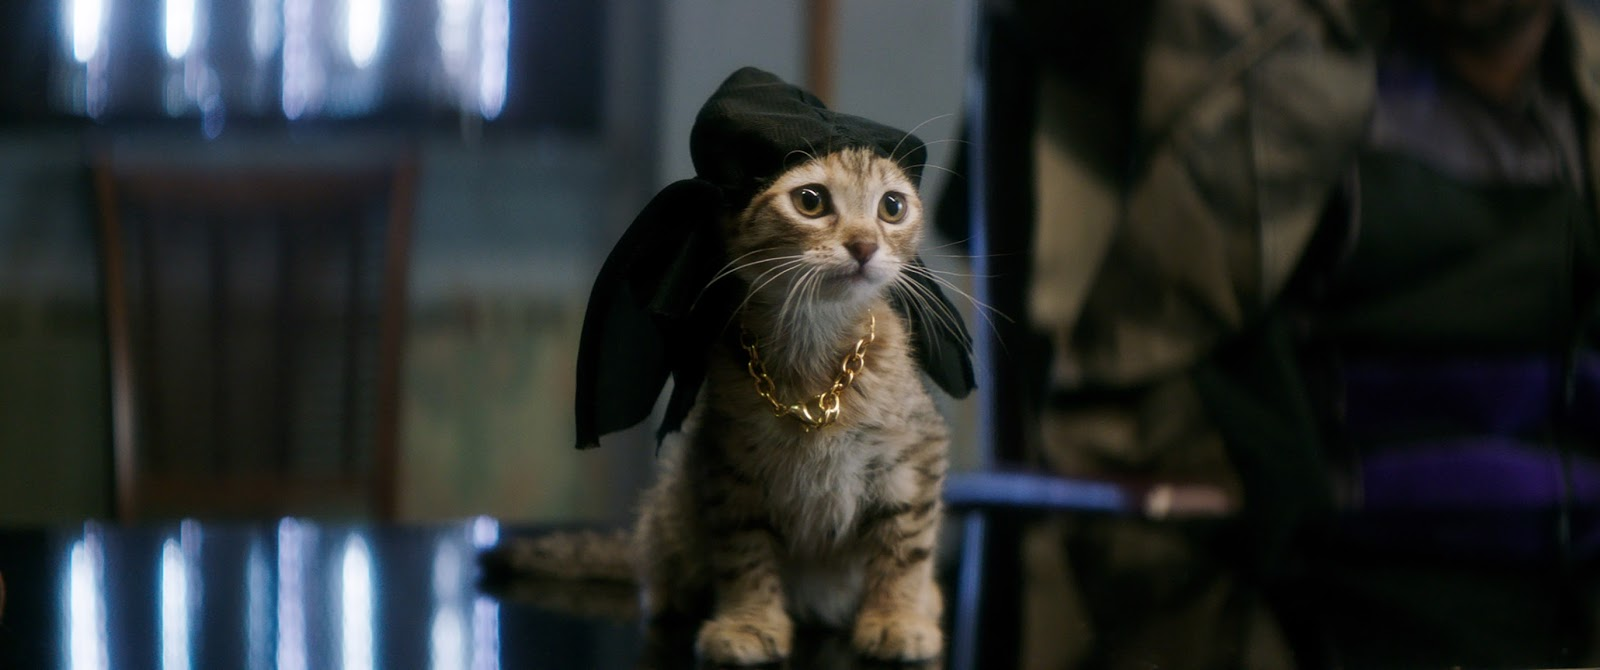 new keanu trailers and 25 pictures the entertainment factor